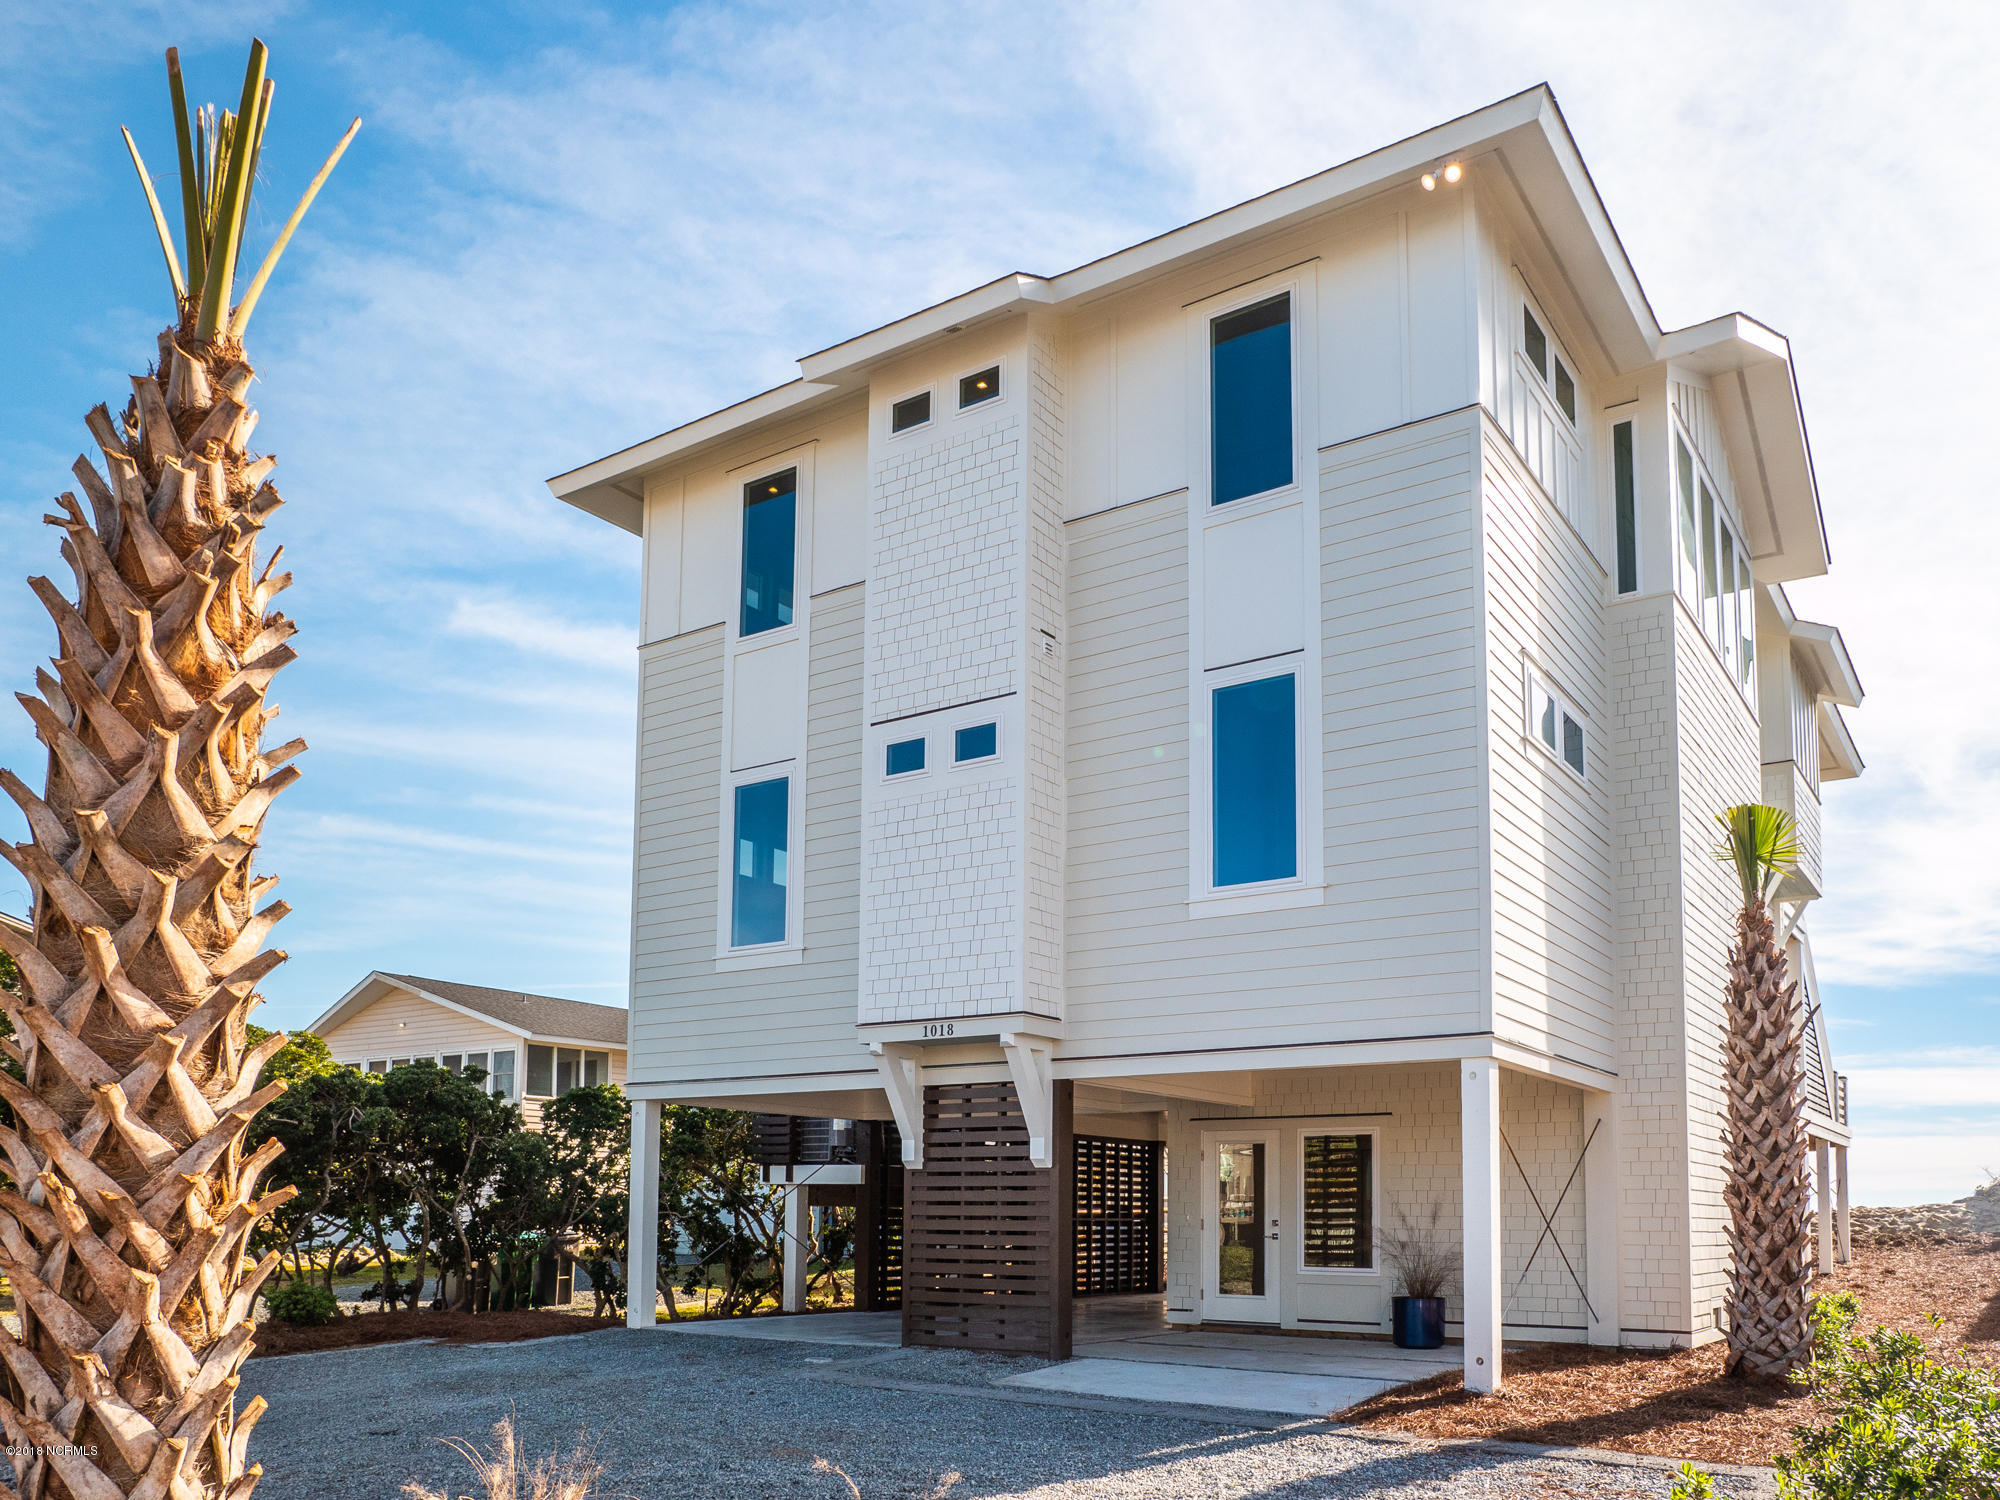 1018 Shore Drive, Surf City, North Carolina, 5 Bedrooms Bedrooms, 7 Rooms Rooms,5 BathroomsBathrooms,Single family residence,For sale,Shore,100117477